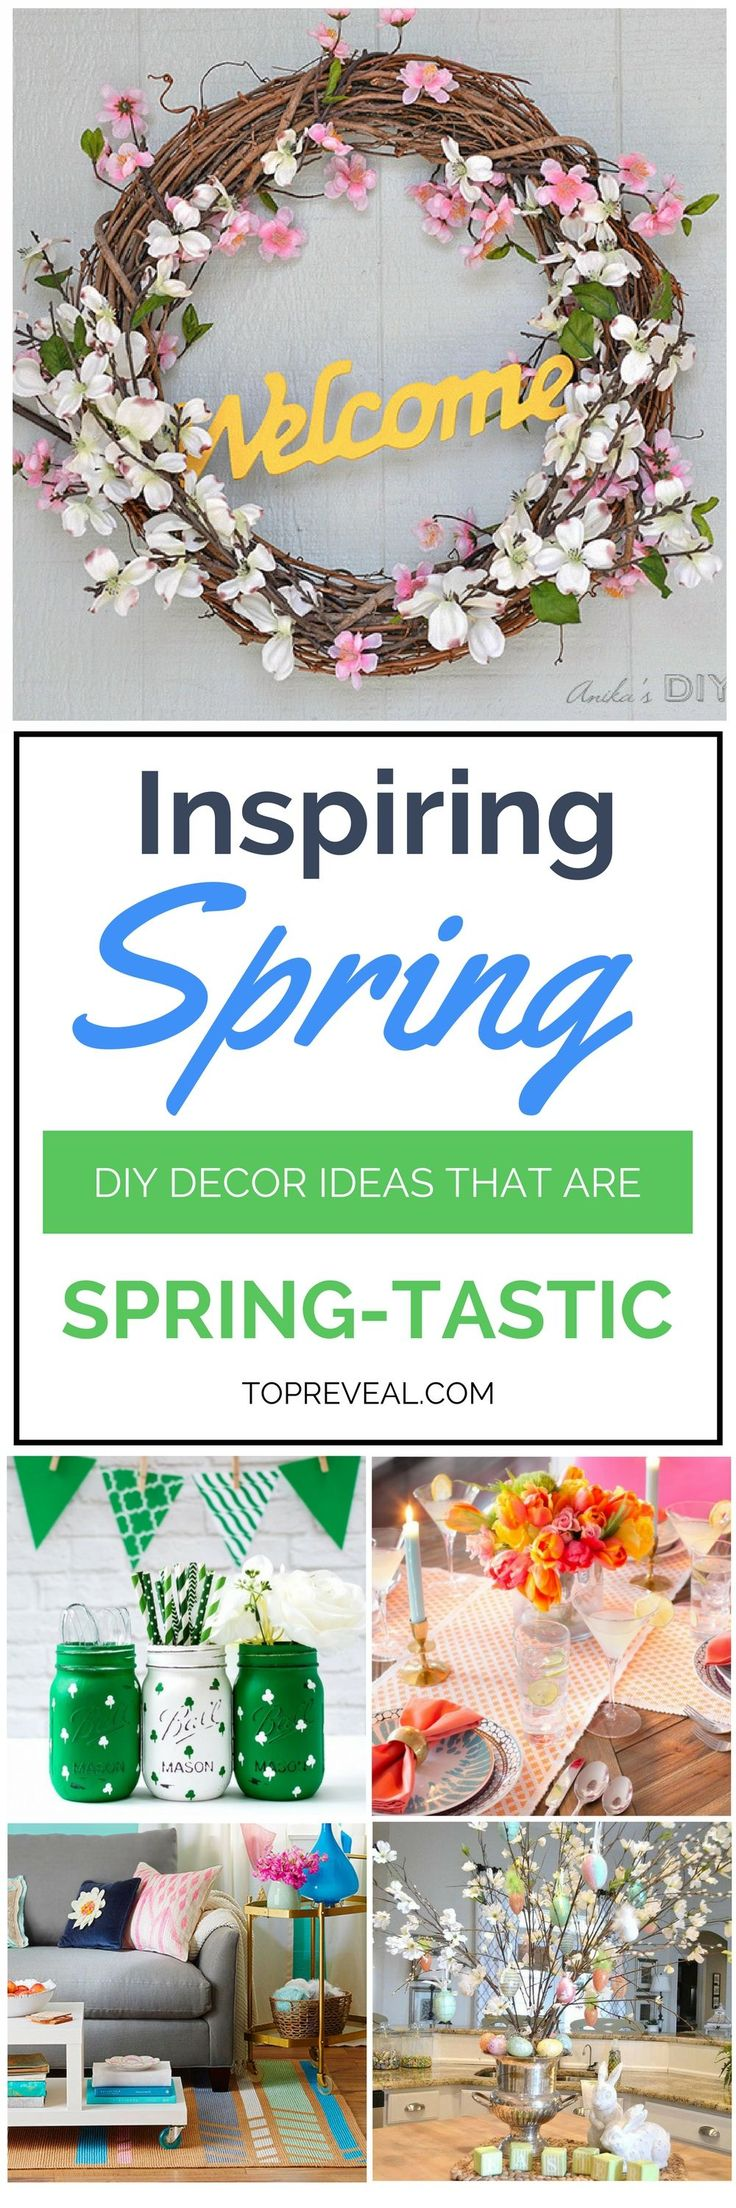 If you love spring as much as I do (or even half as much) and want to incorporate some of the season's signature elements in your home then mySpring DIY Ideas That Are Spring-Tastic (if I do say so myself) is just what you need! Read on to learn how easy it is and discover some ingeniousprojects to help make it happen. #diy #homedecor #spring #springdecor #decorations #decor